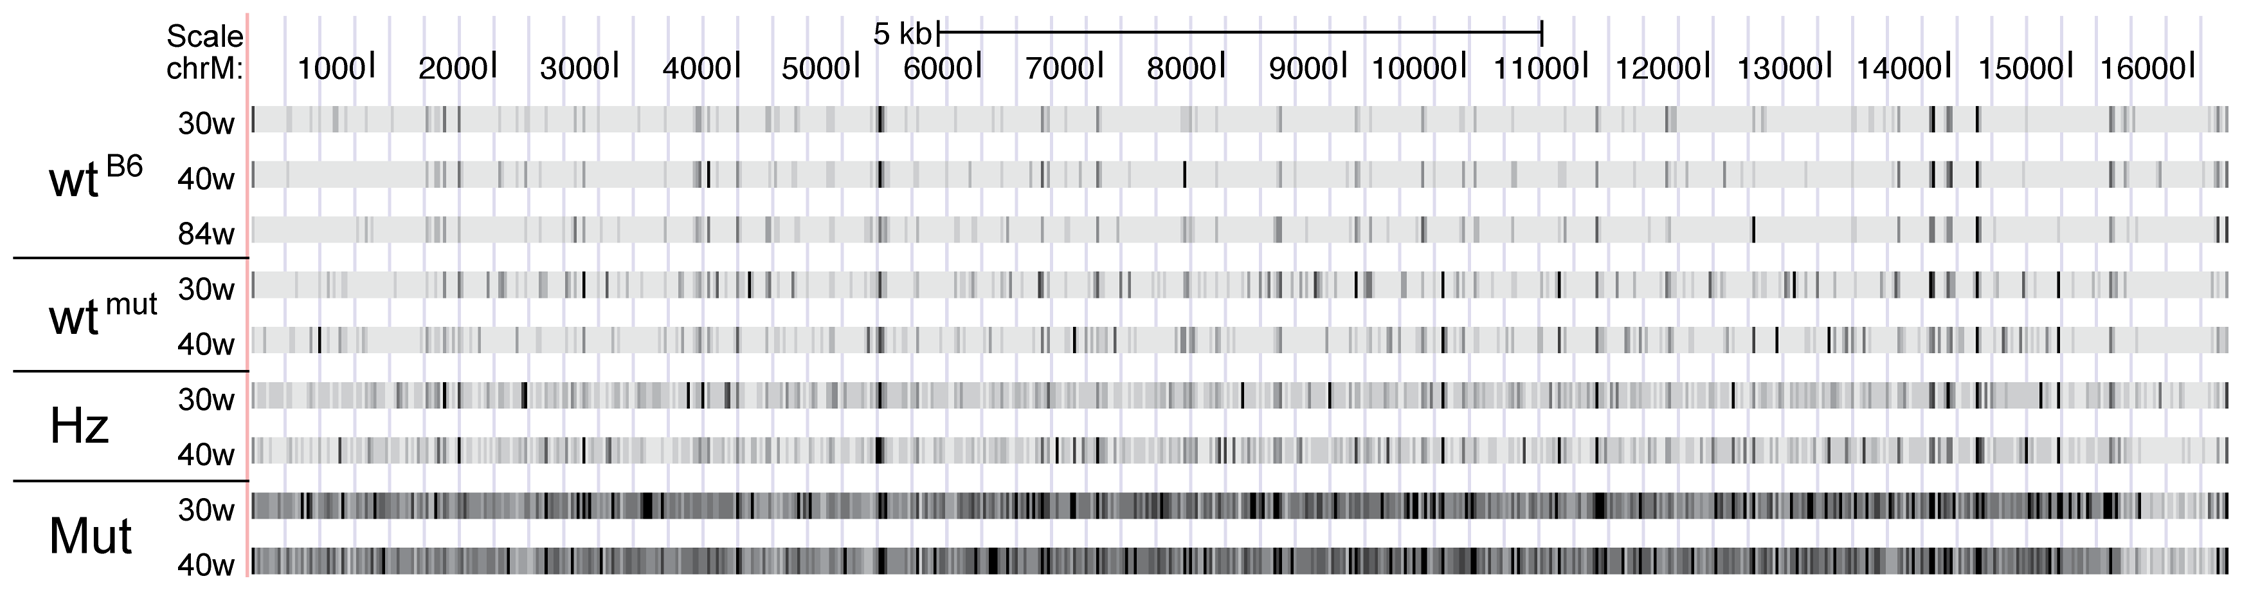 Corrected mutational frequencies viewed in the UCSC genome browser.